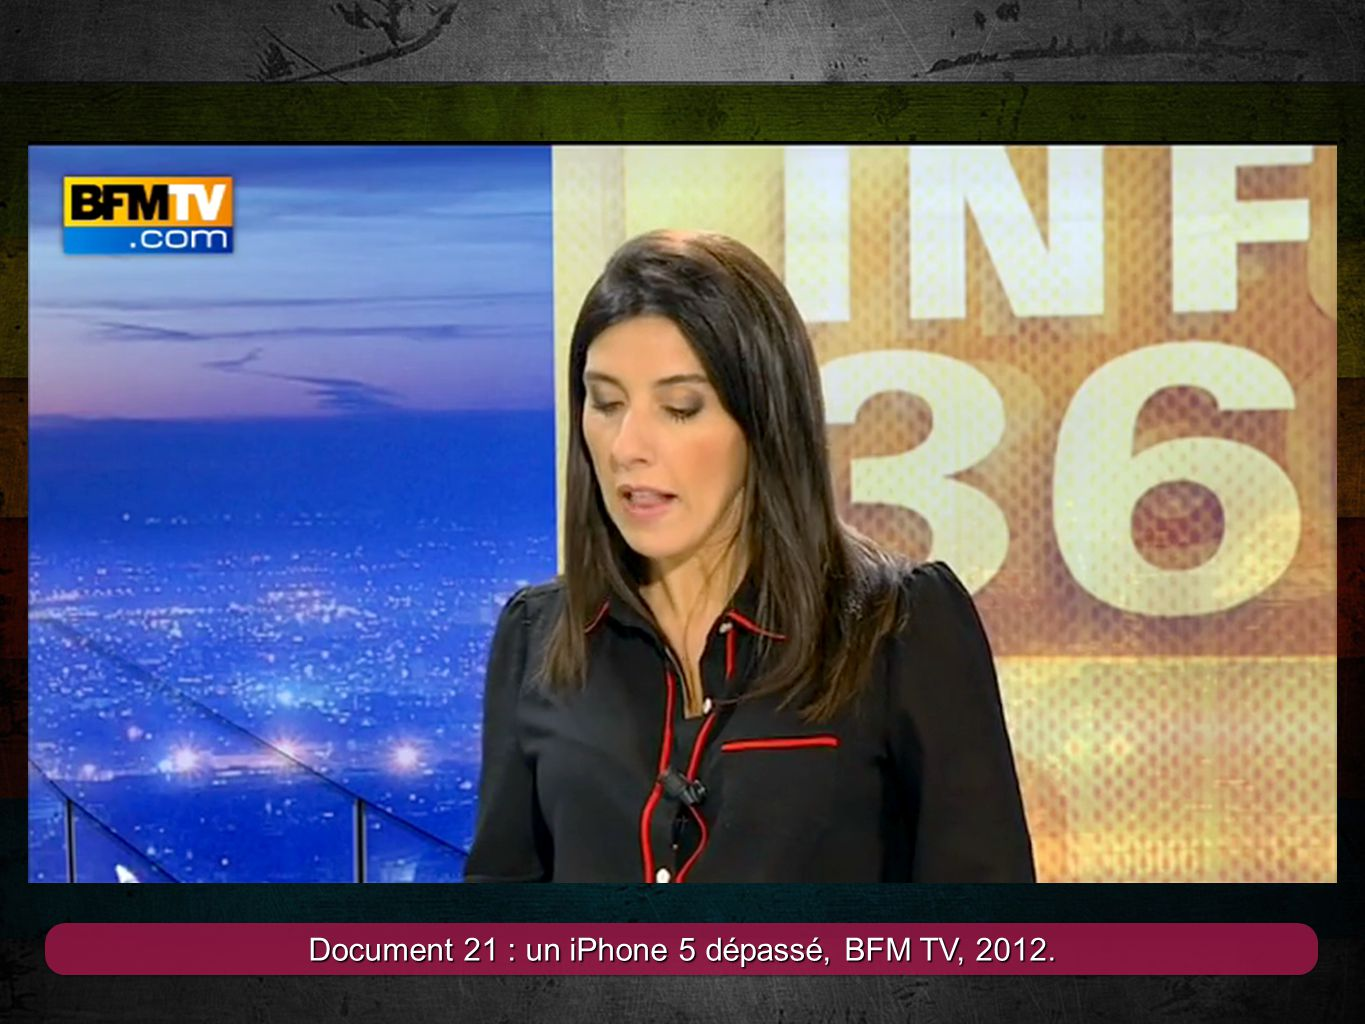 Document 21 : un iPhone 5 dépassé, BFM TV, 2012.